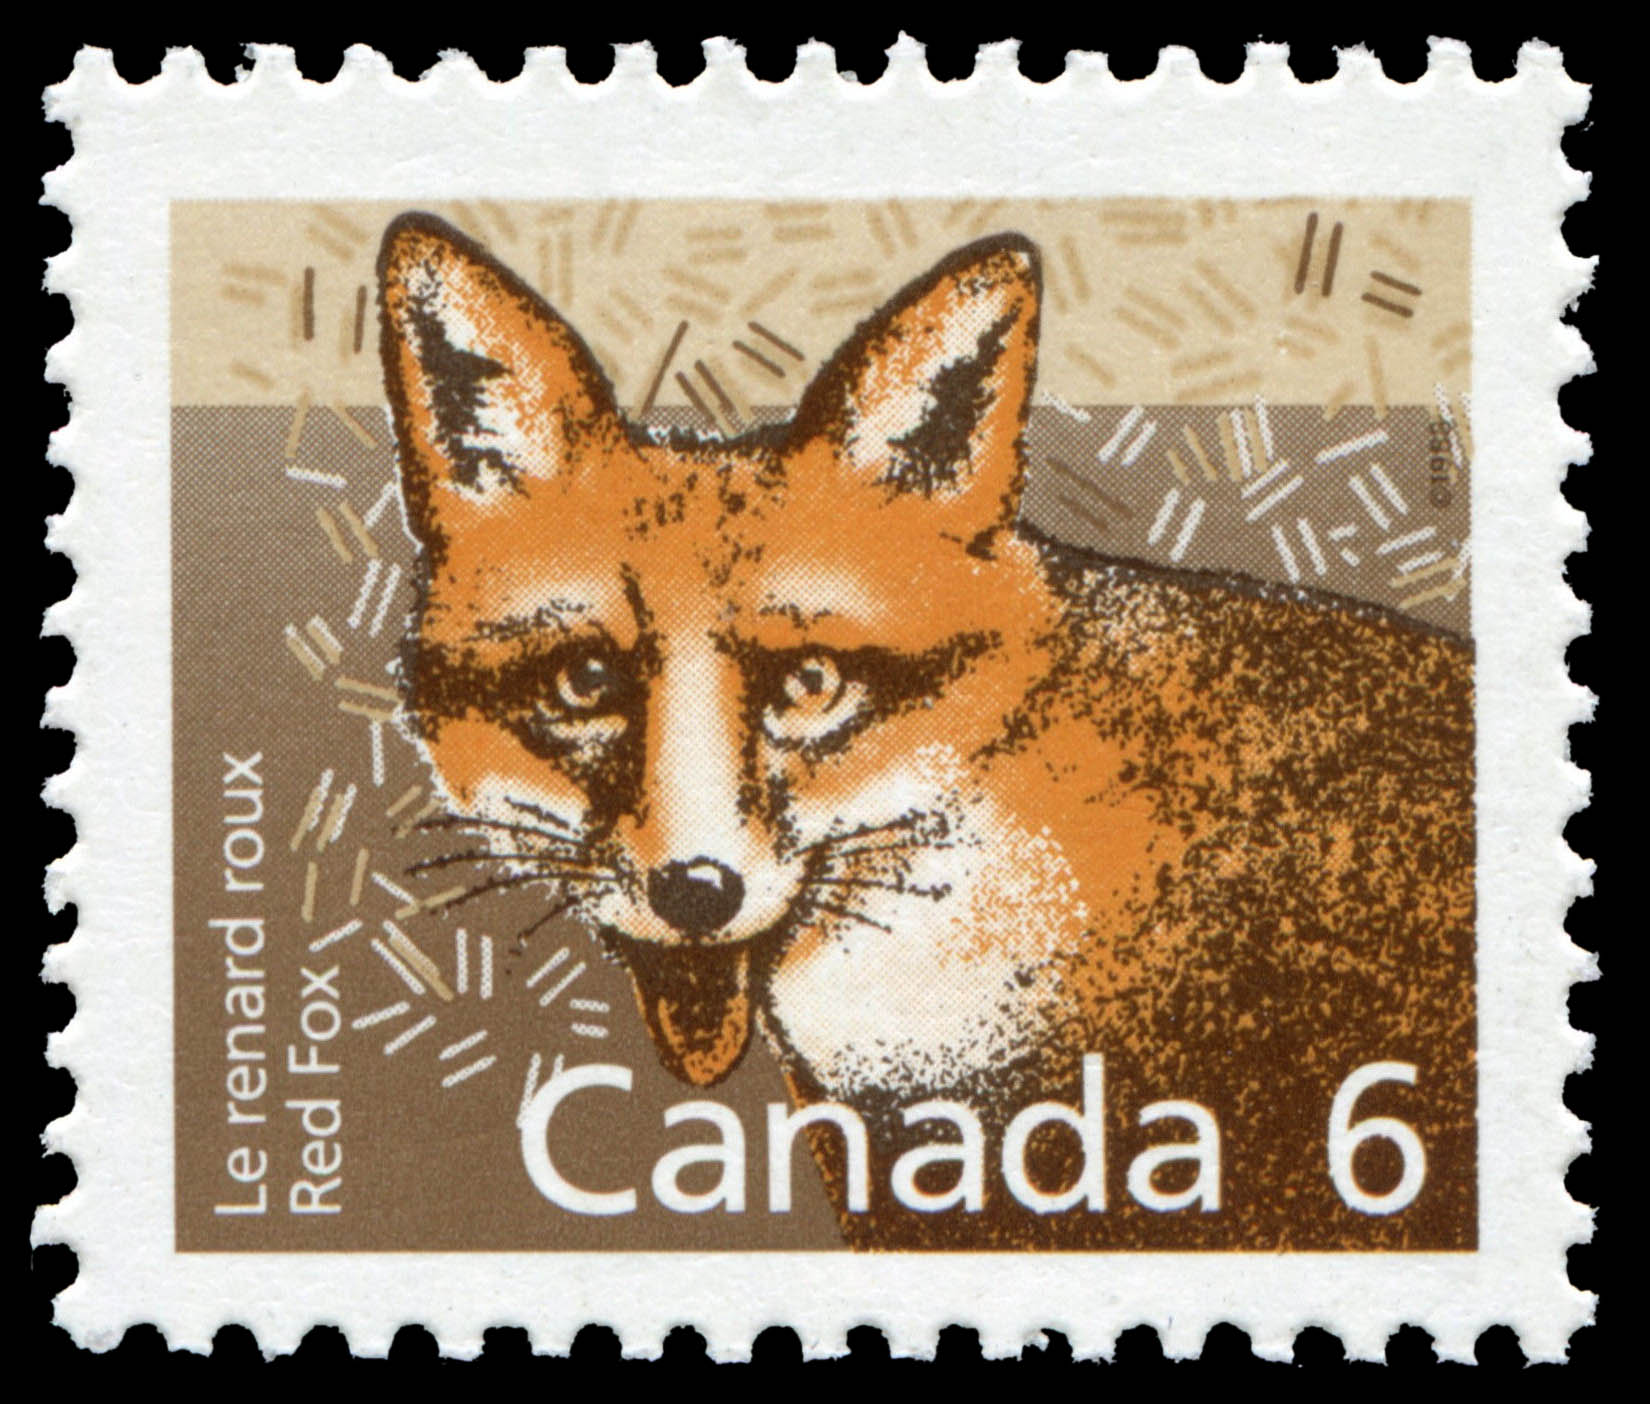 Red Fox Canada Postage Stamp | Small Canadian Mammals